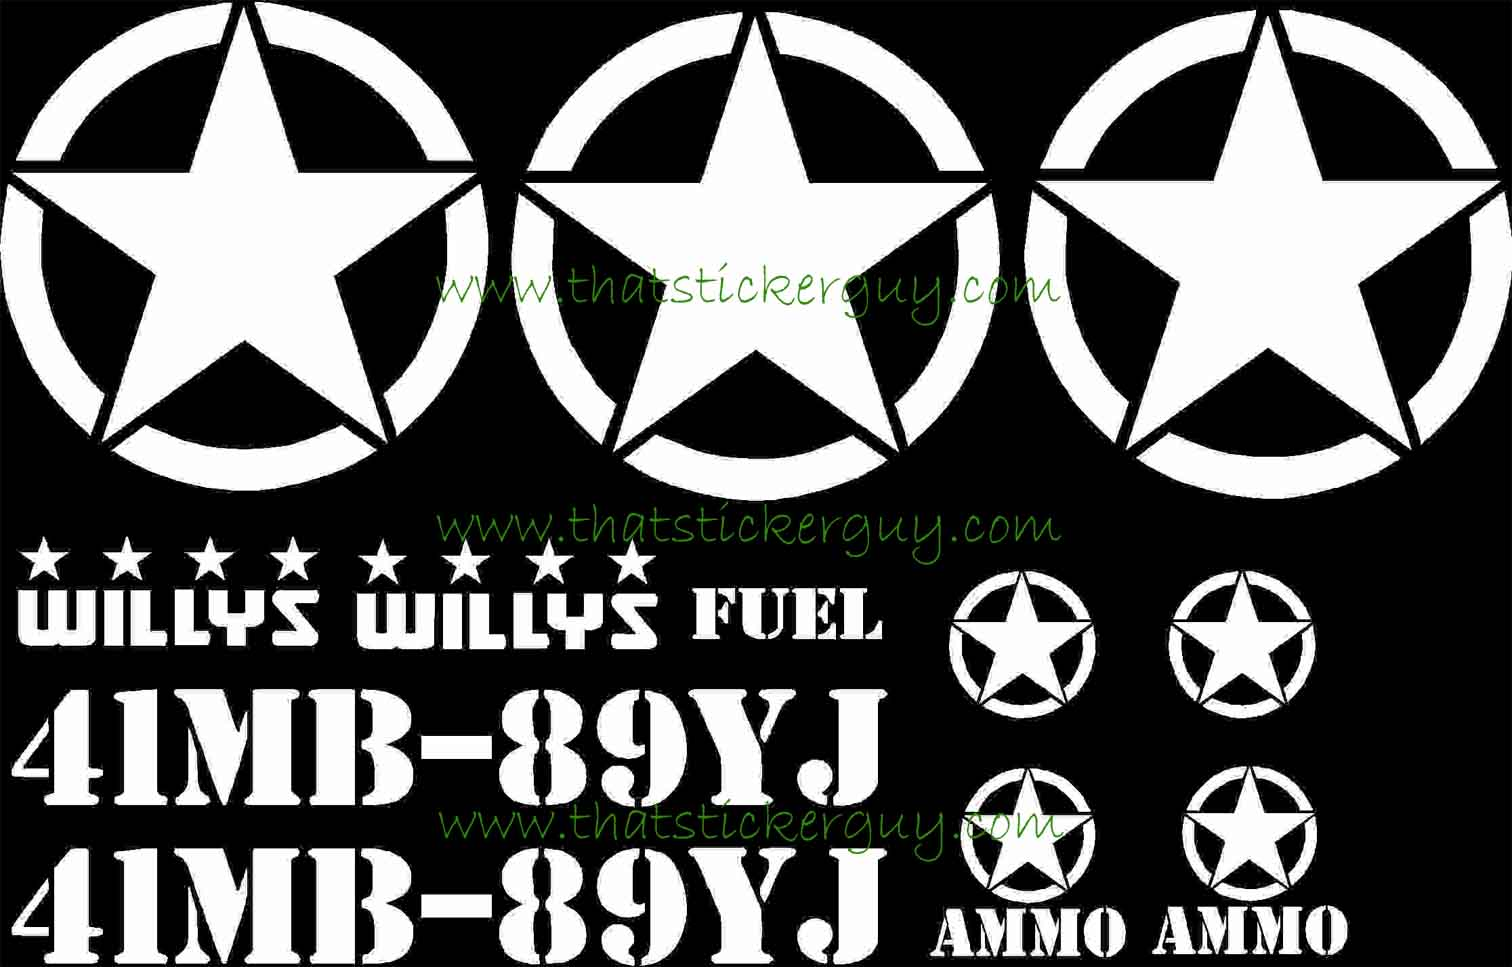 army jeep 12 pc sticker kit Willys Army Jeep army jeep kit 12pc 0003